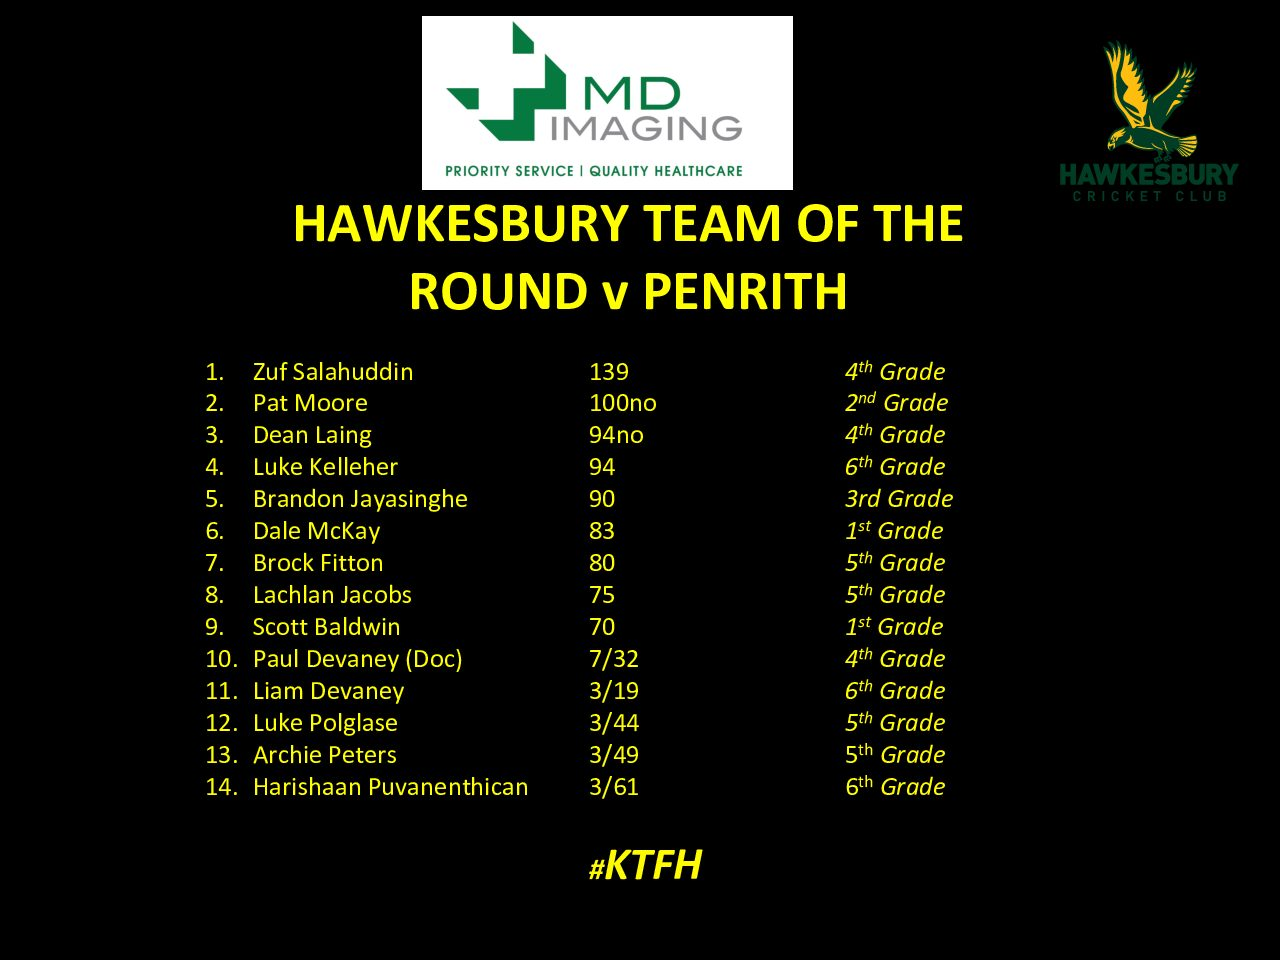 MD IMAGING – HAWKS TEAM OF THE ROUND – PENRITH